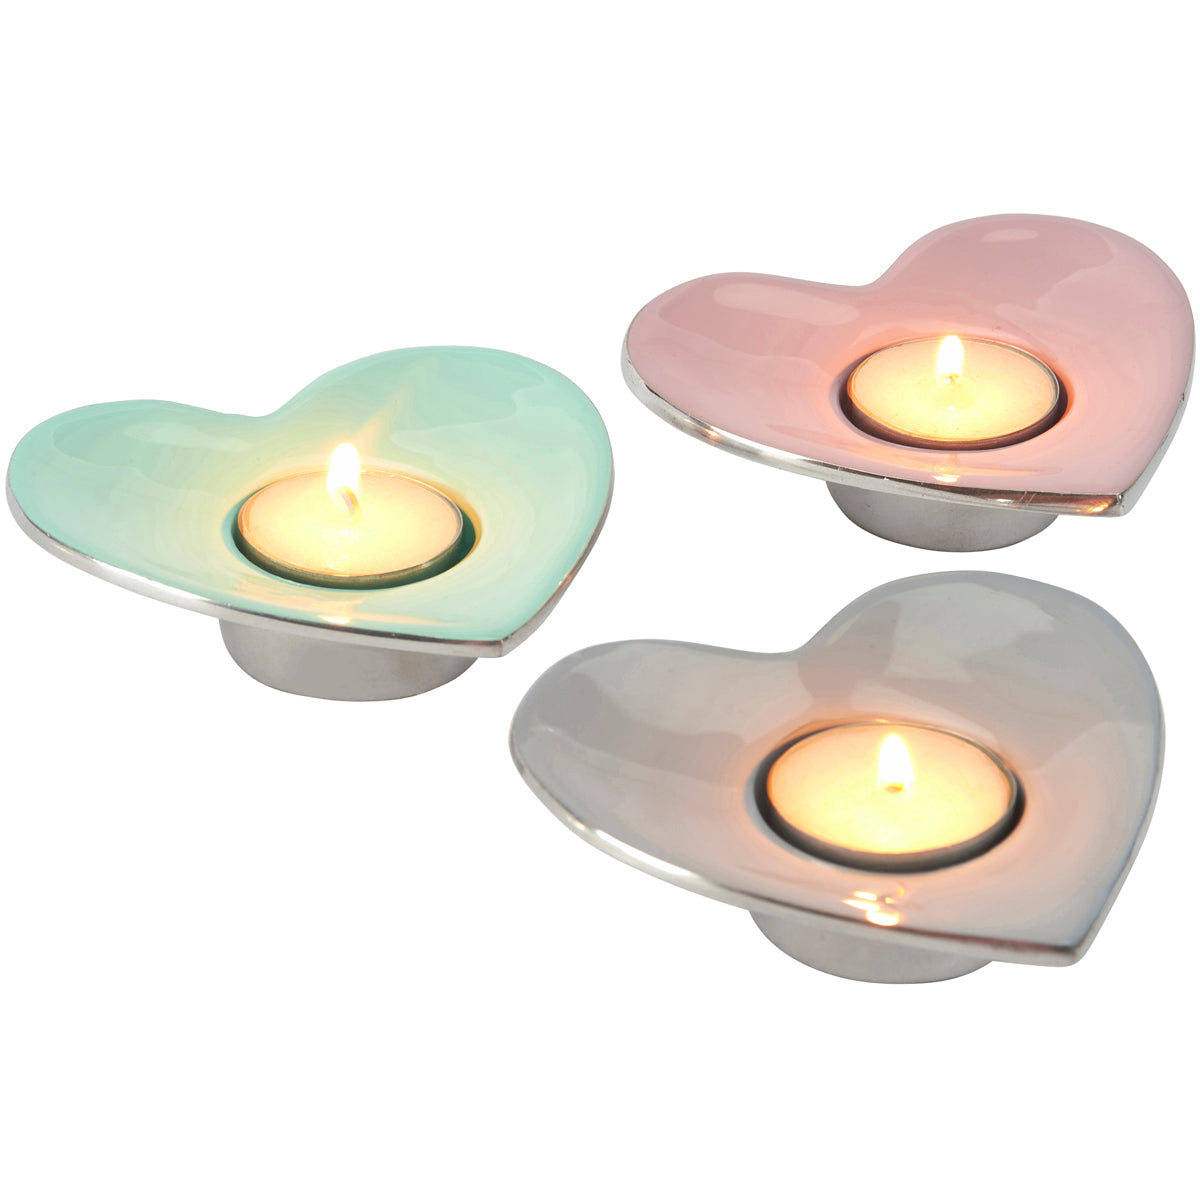 Pretty aluminium candle tea light holders in choice of colours - pink, blue or green